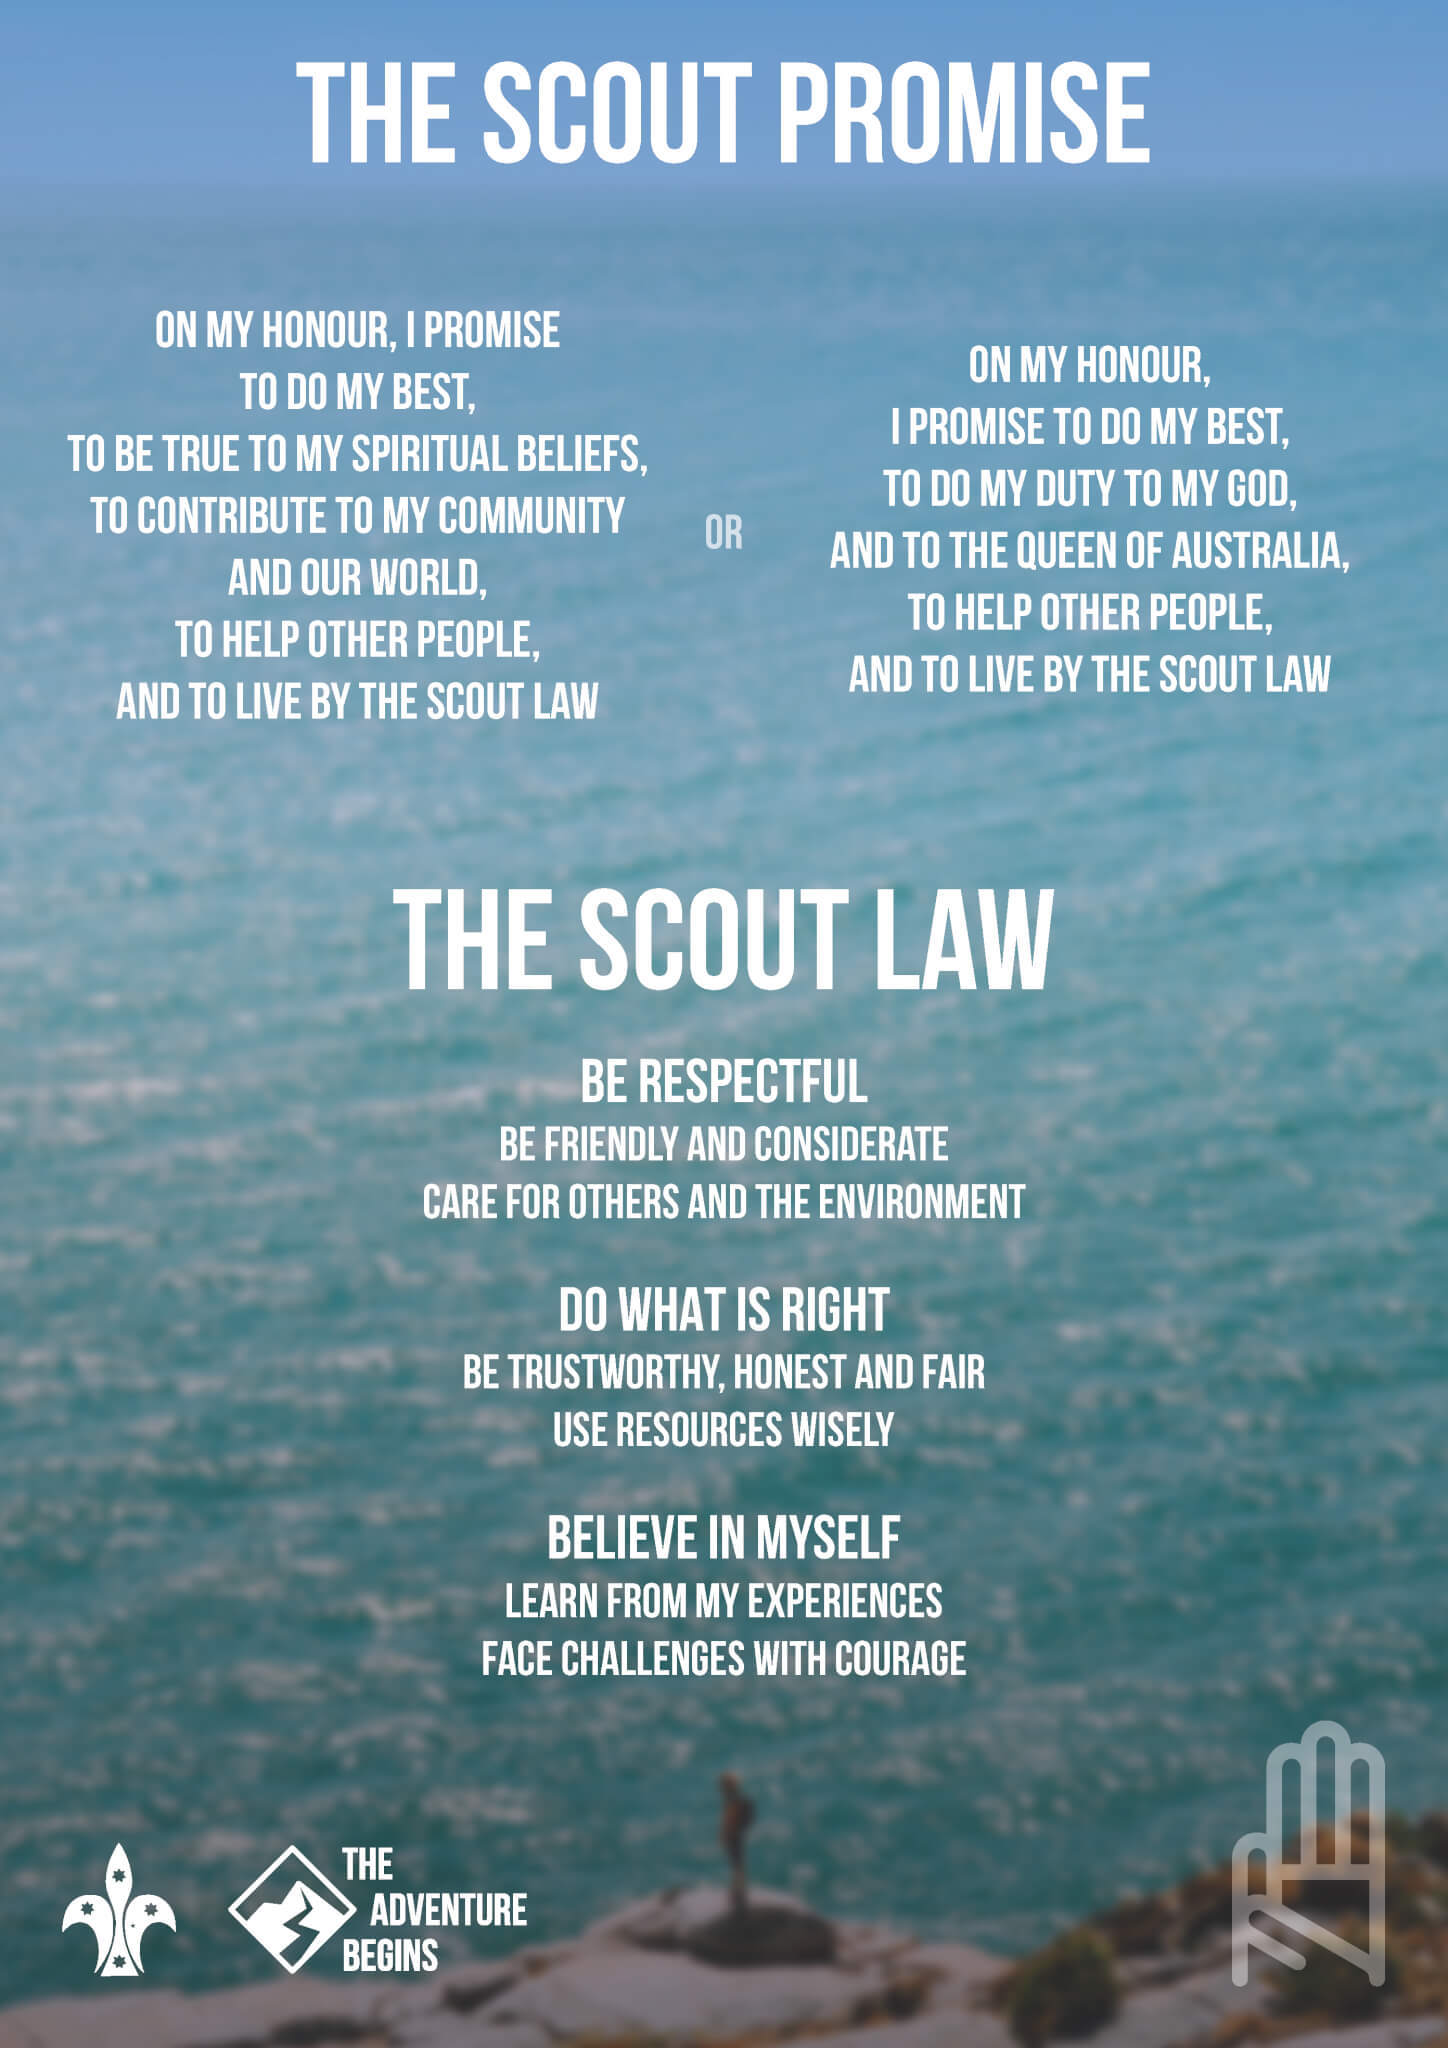 photograph regarding Cub Scout Oath and Law Printable titled The Experience Commences - Warranty and Legislation Scouts Australia